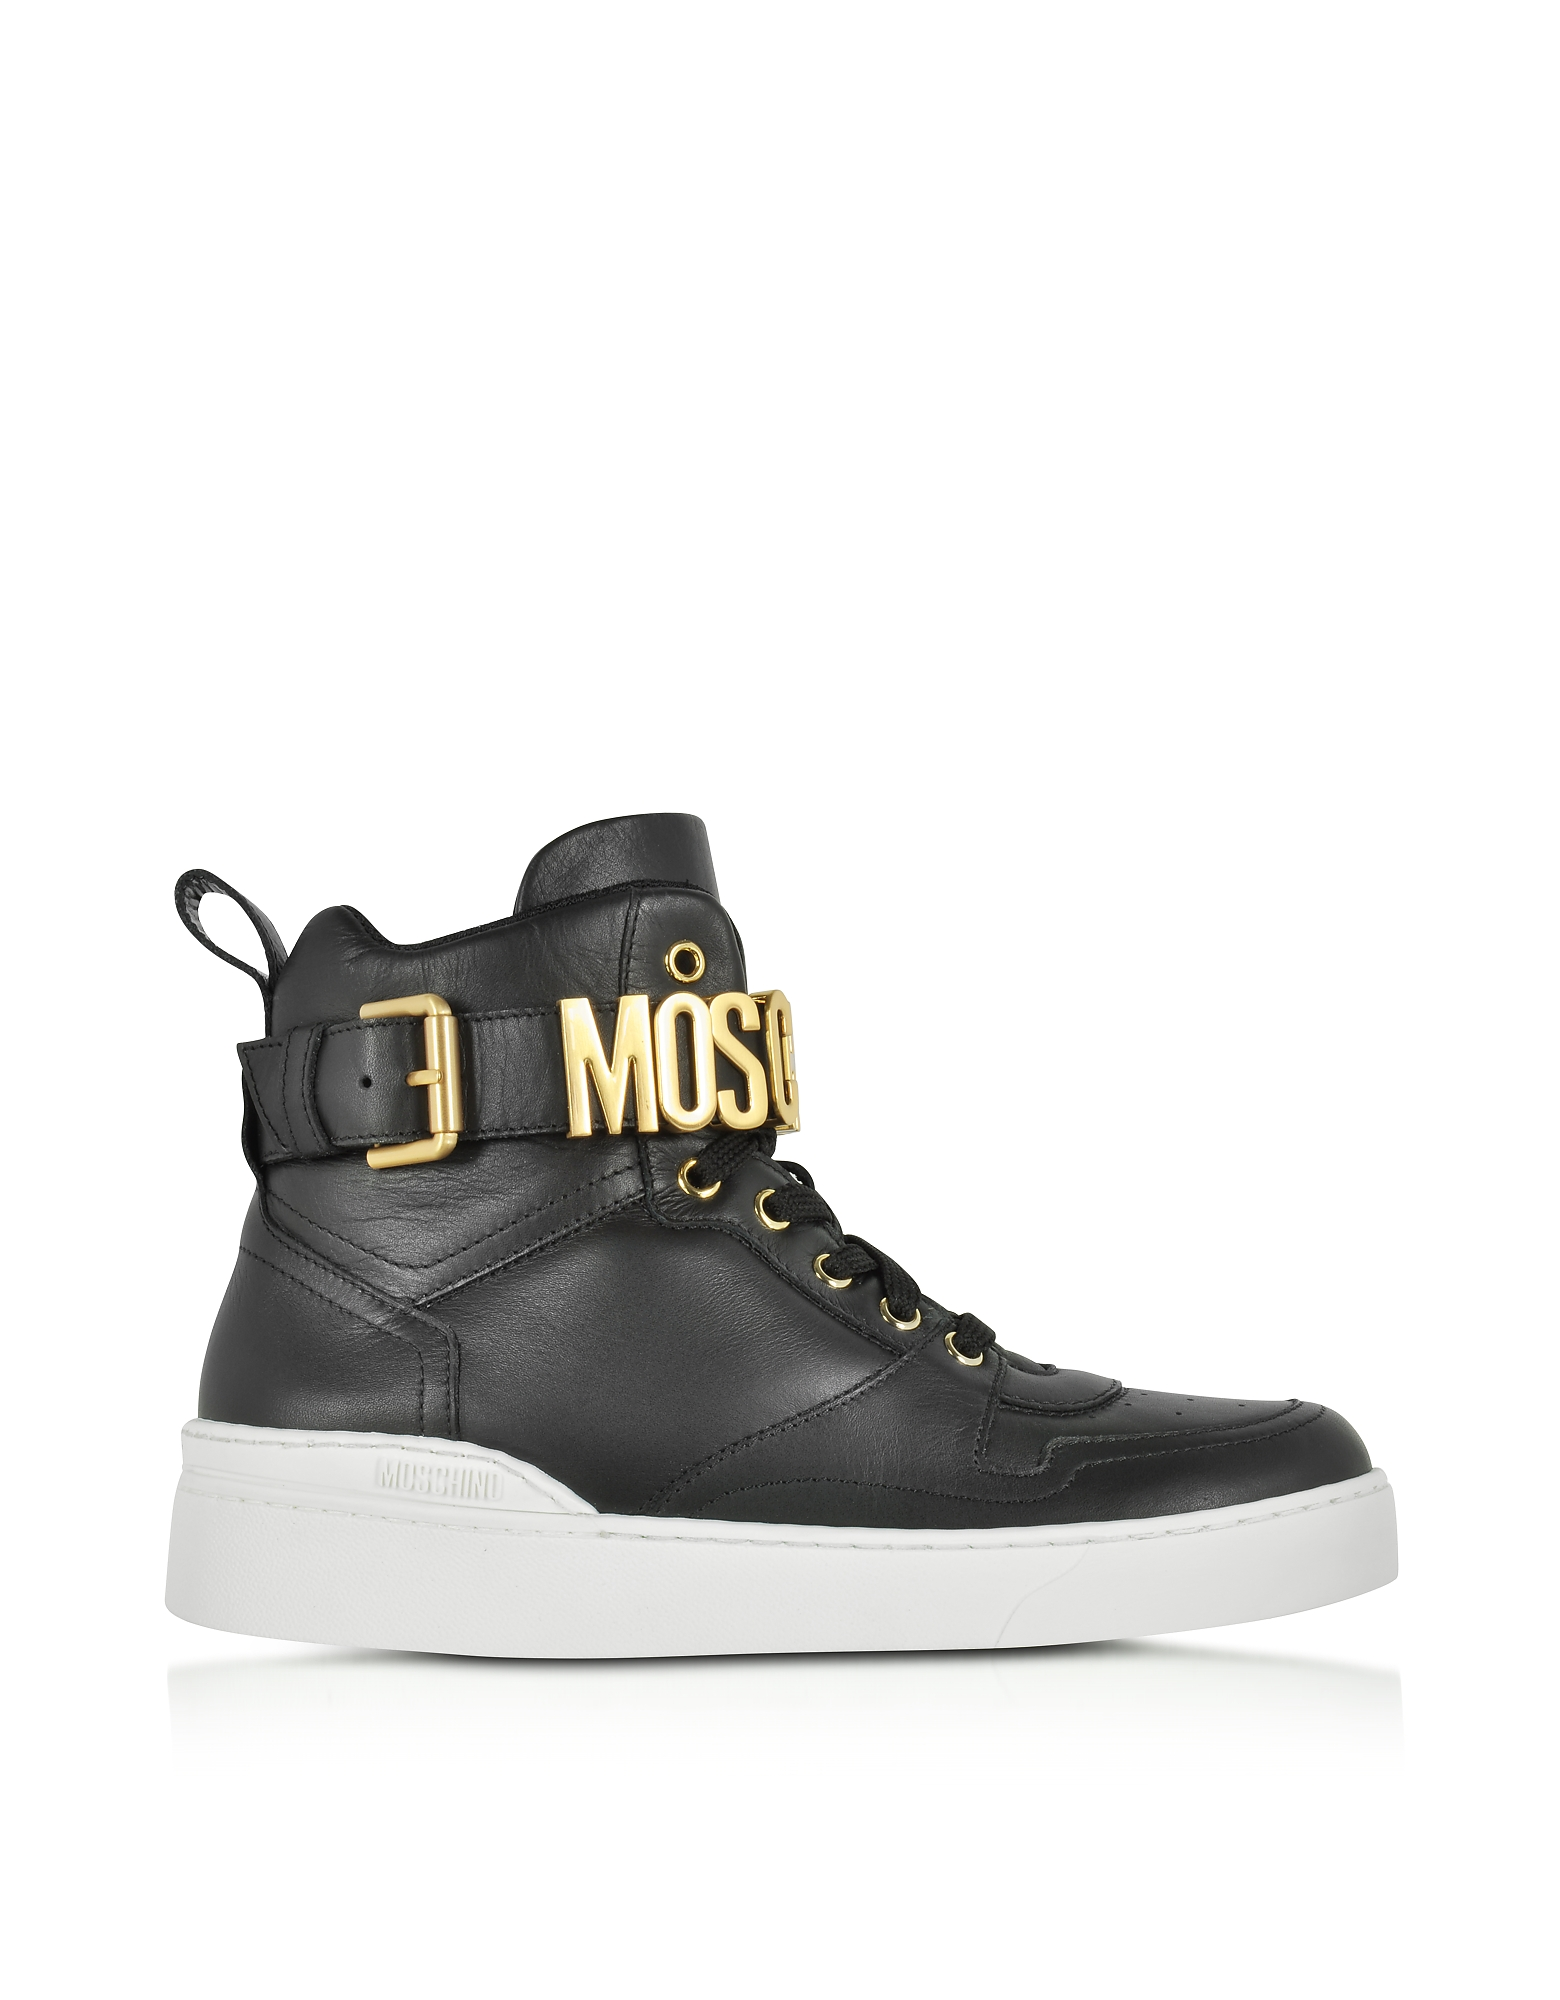 Moschino Shoes, Black Leather High Top Sneakers